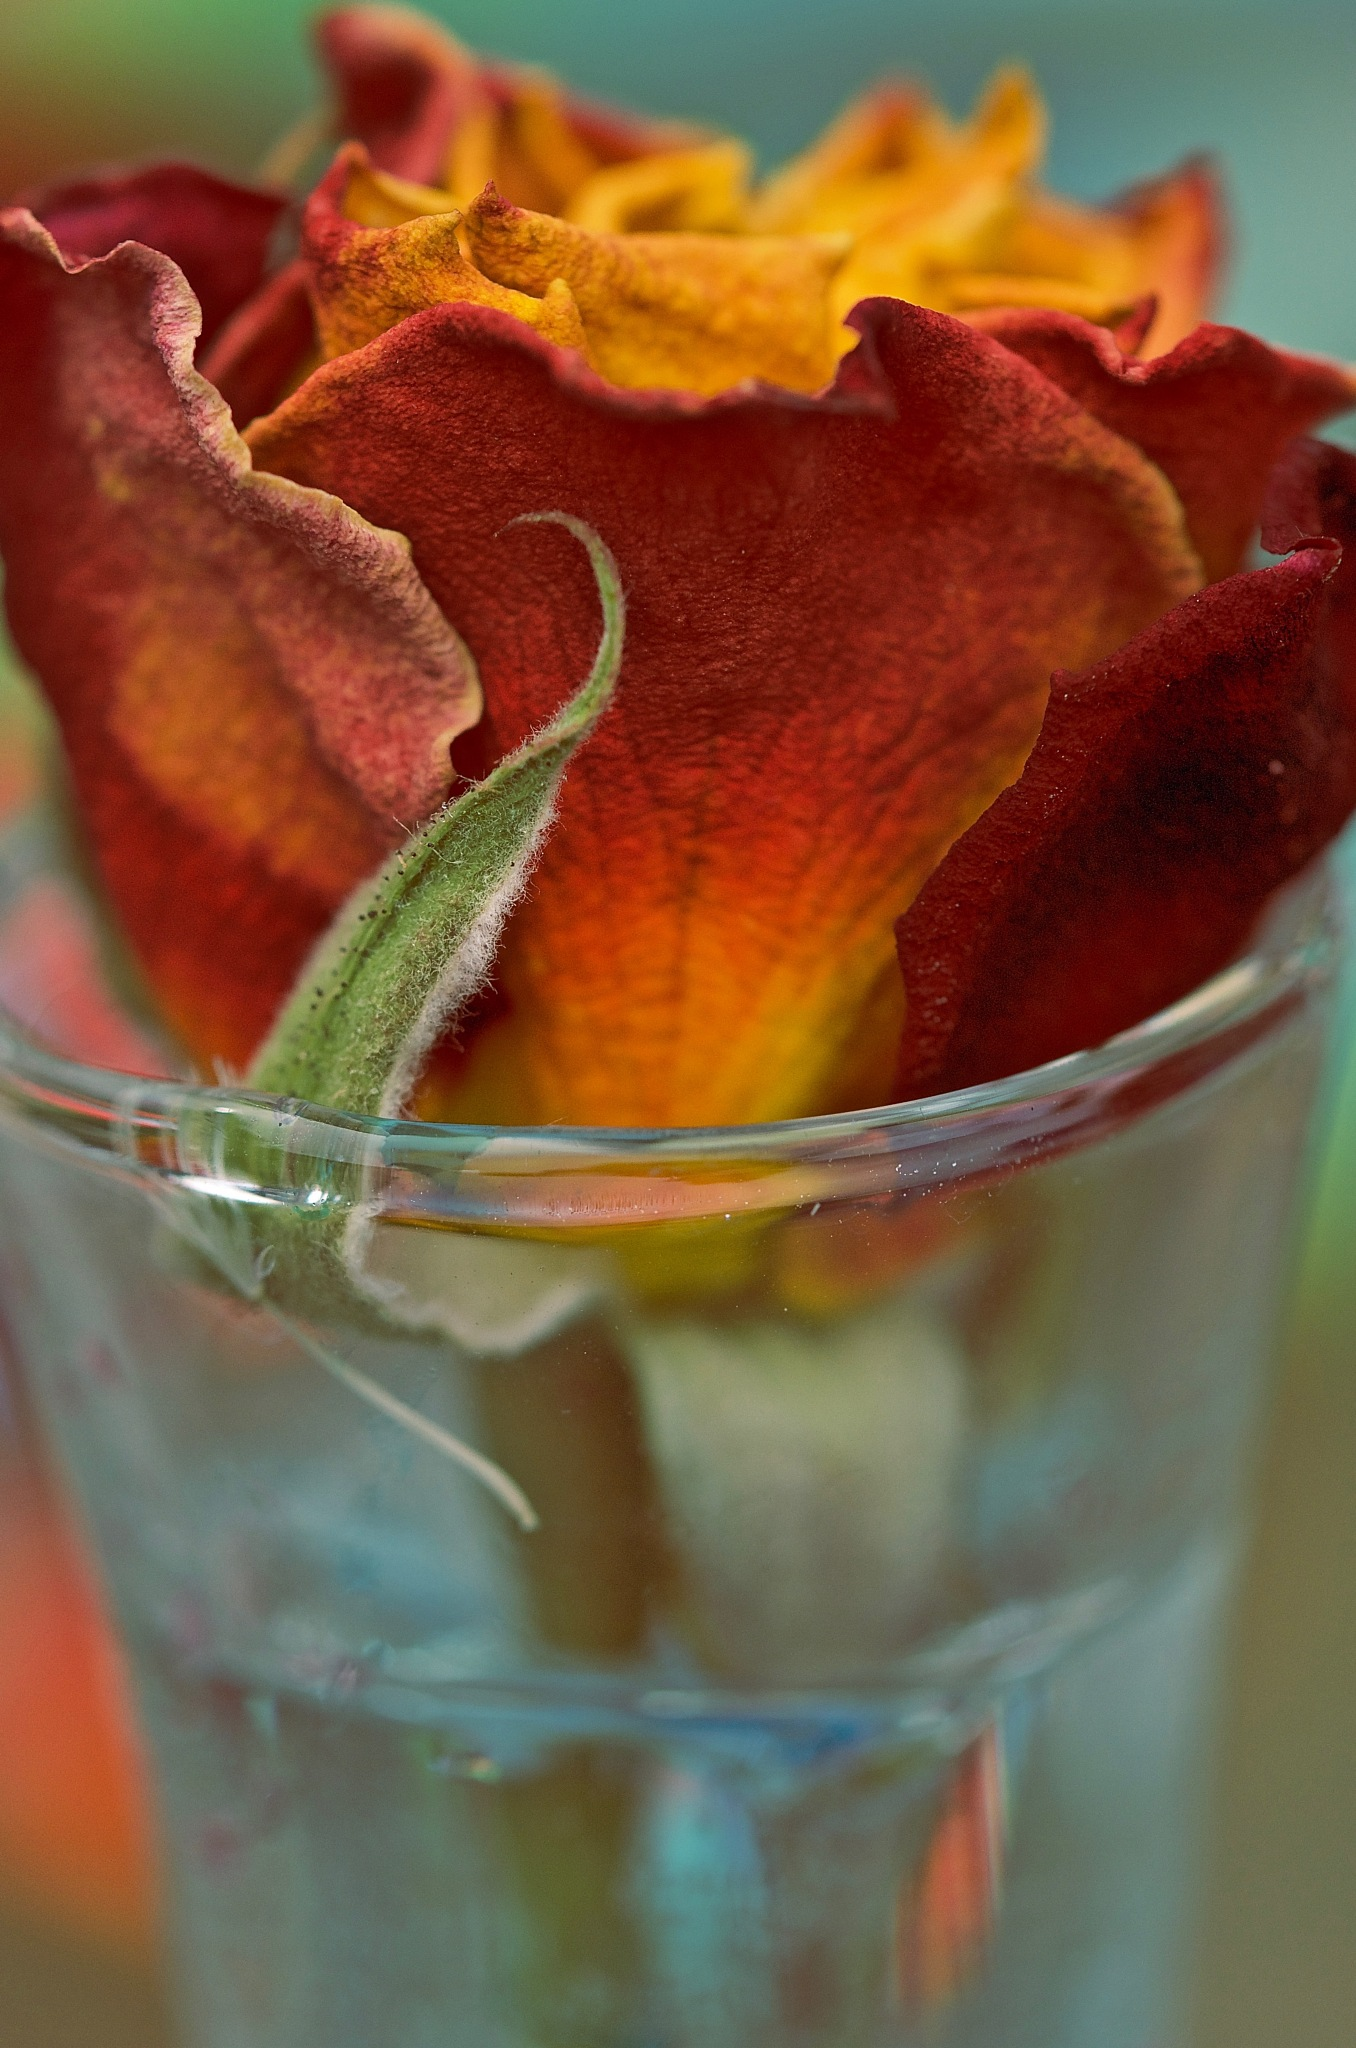 Old rose in glass by pam.simonsson